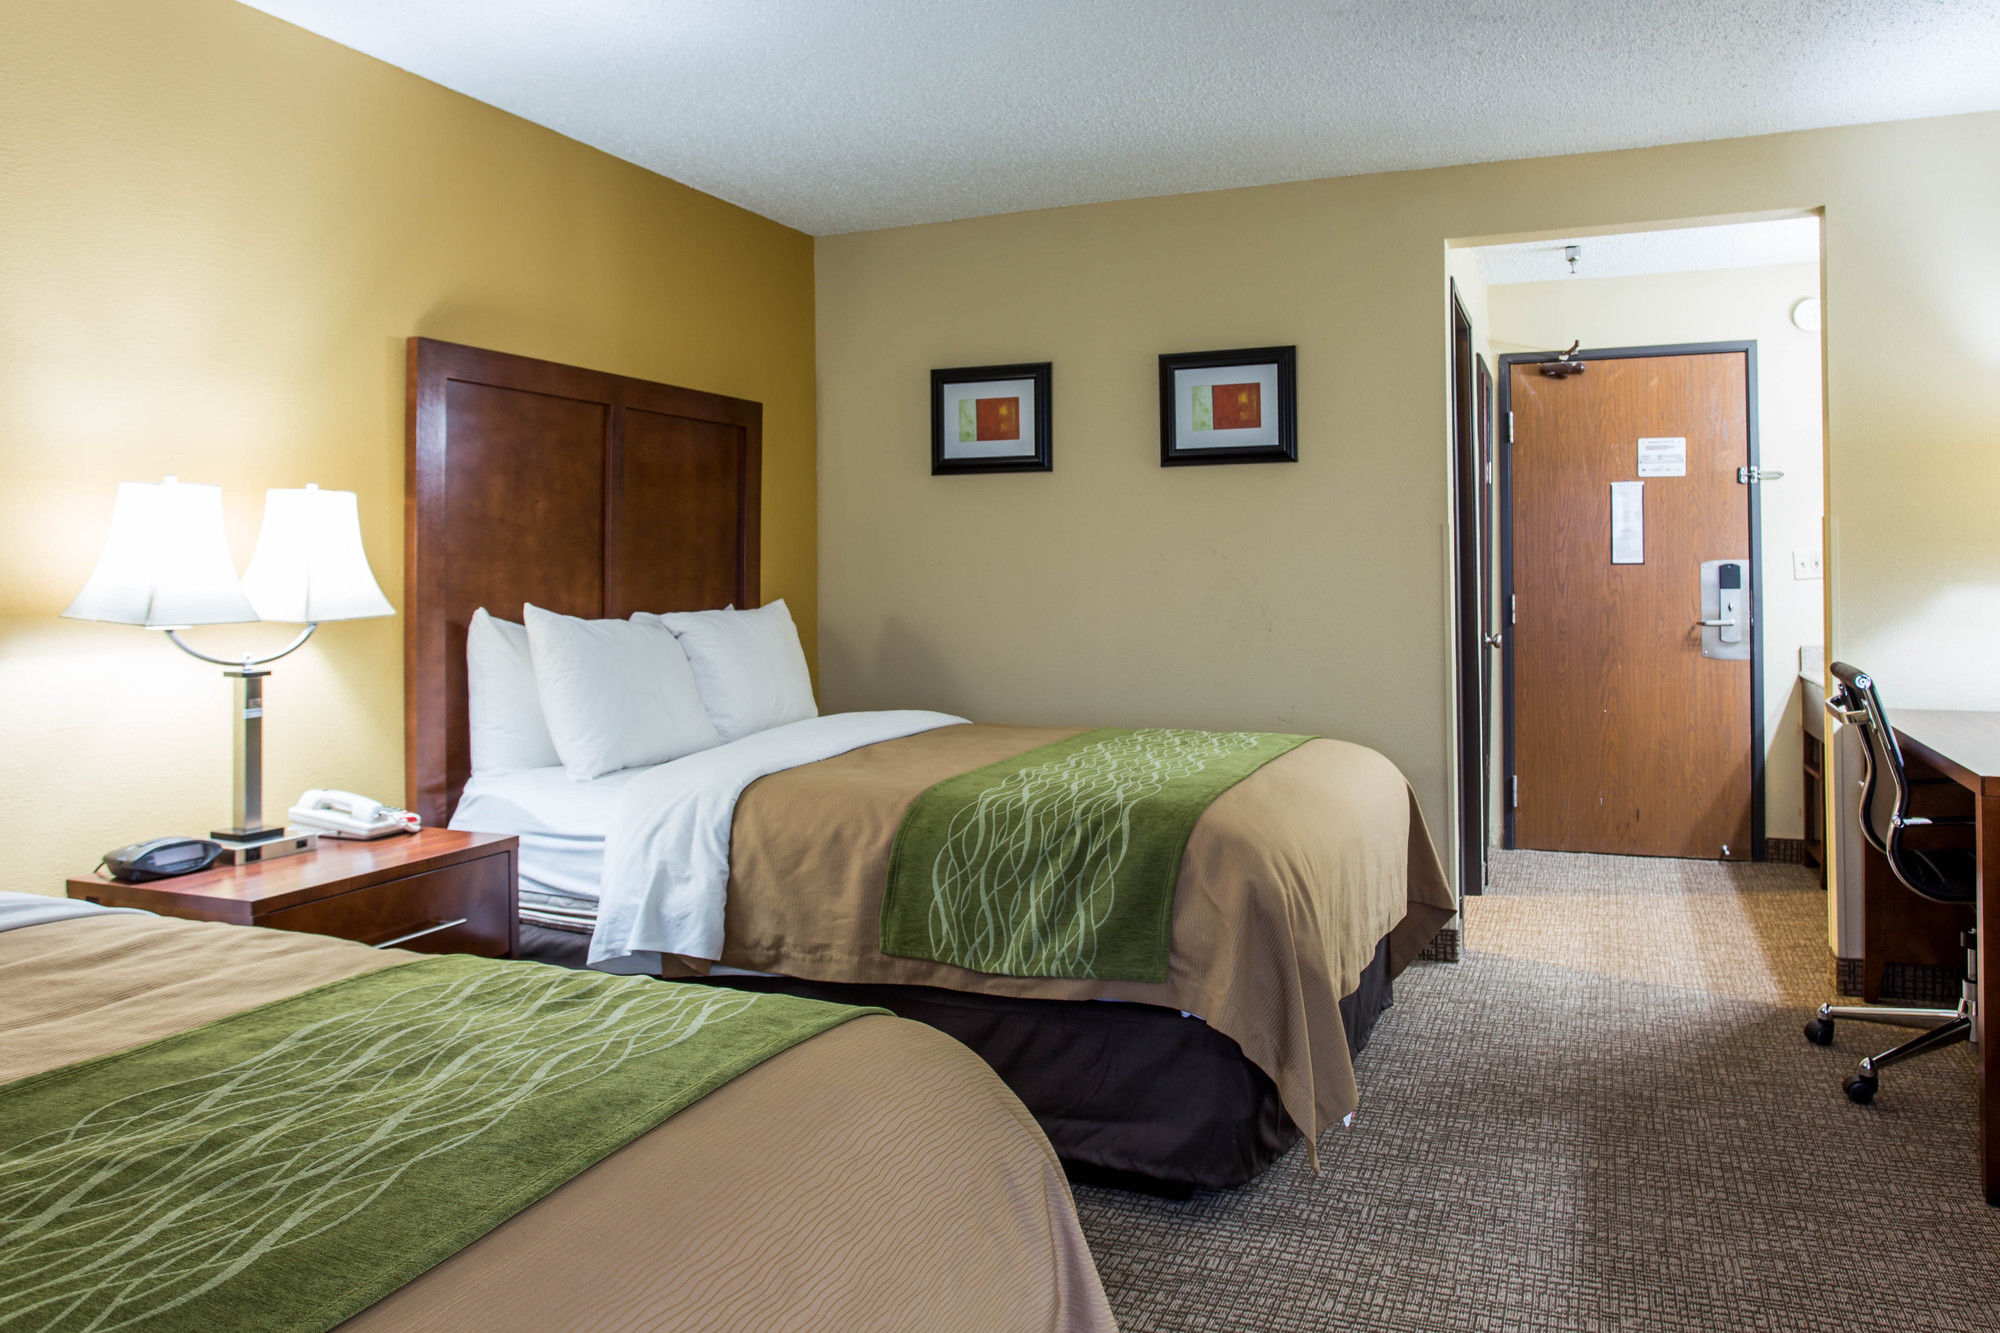 Comfort Inn in Columbia, SC